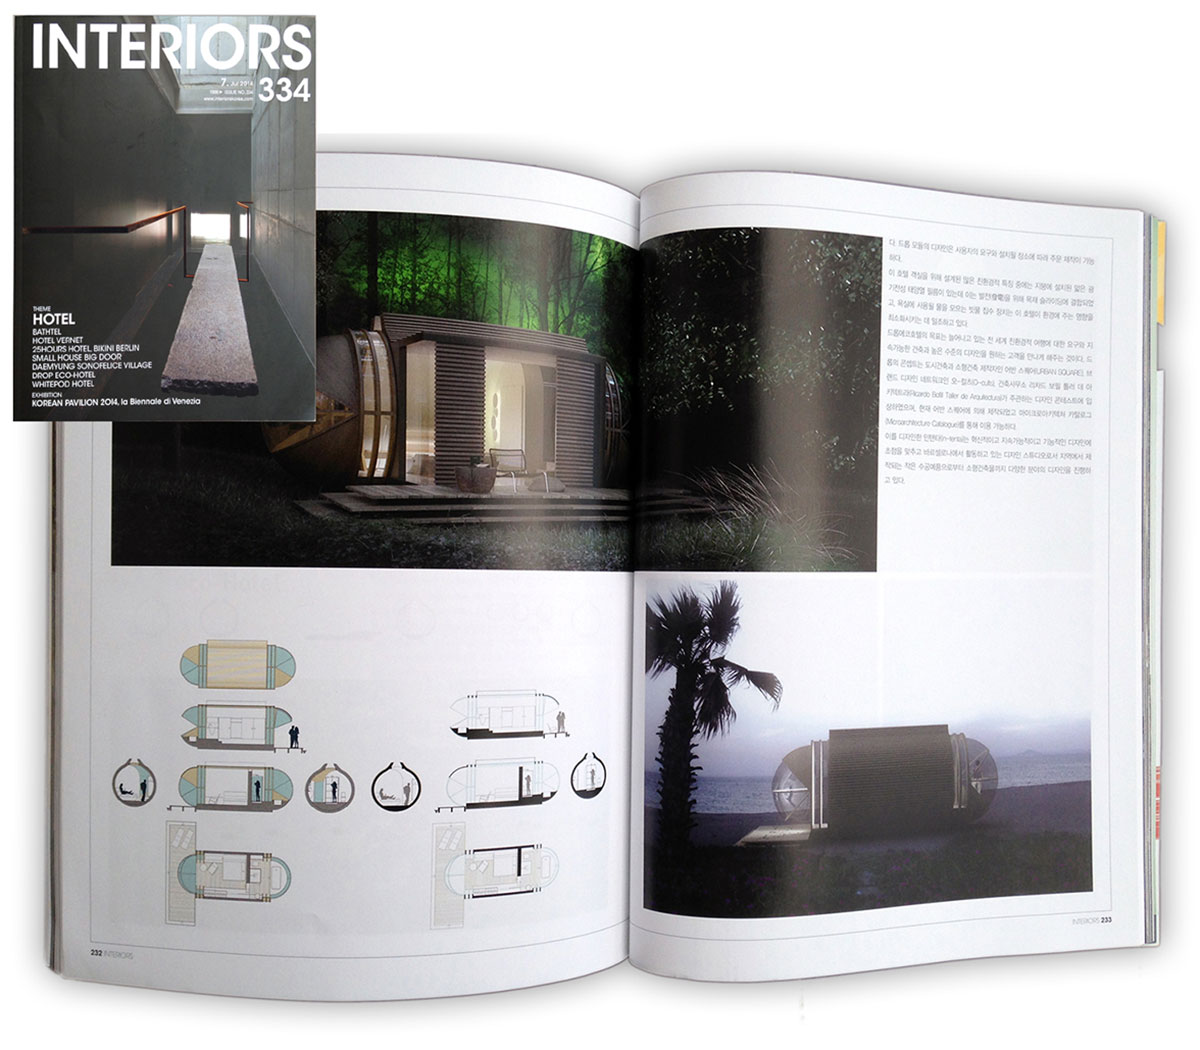 DROP-eco-hotel-interiors-korea-cover-02